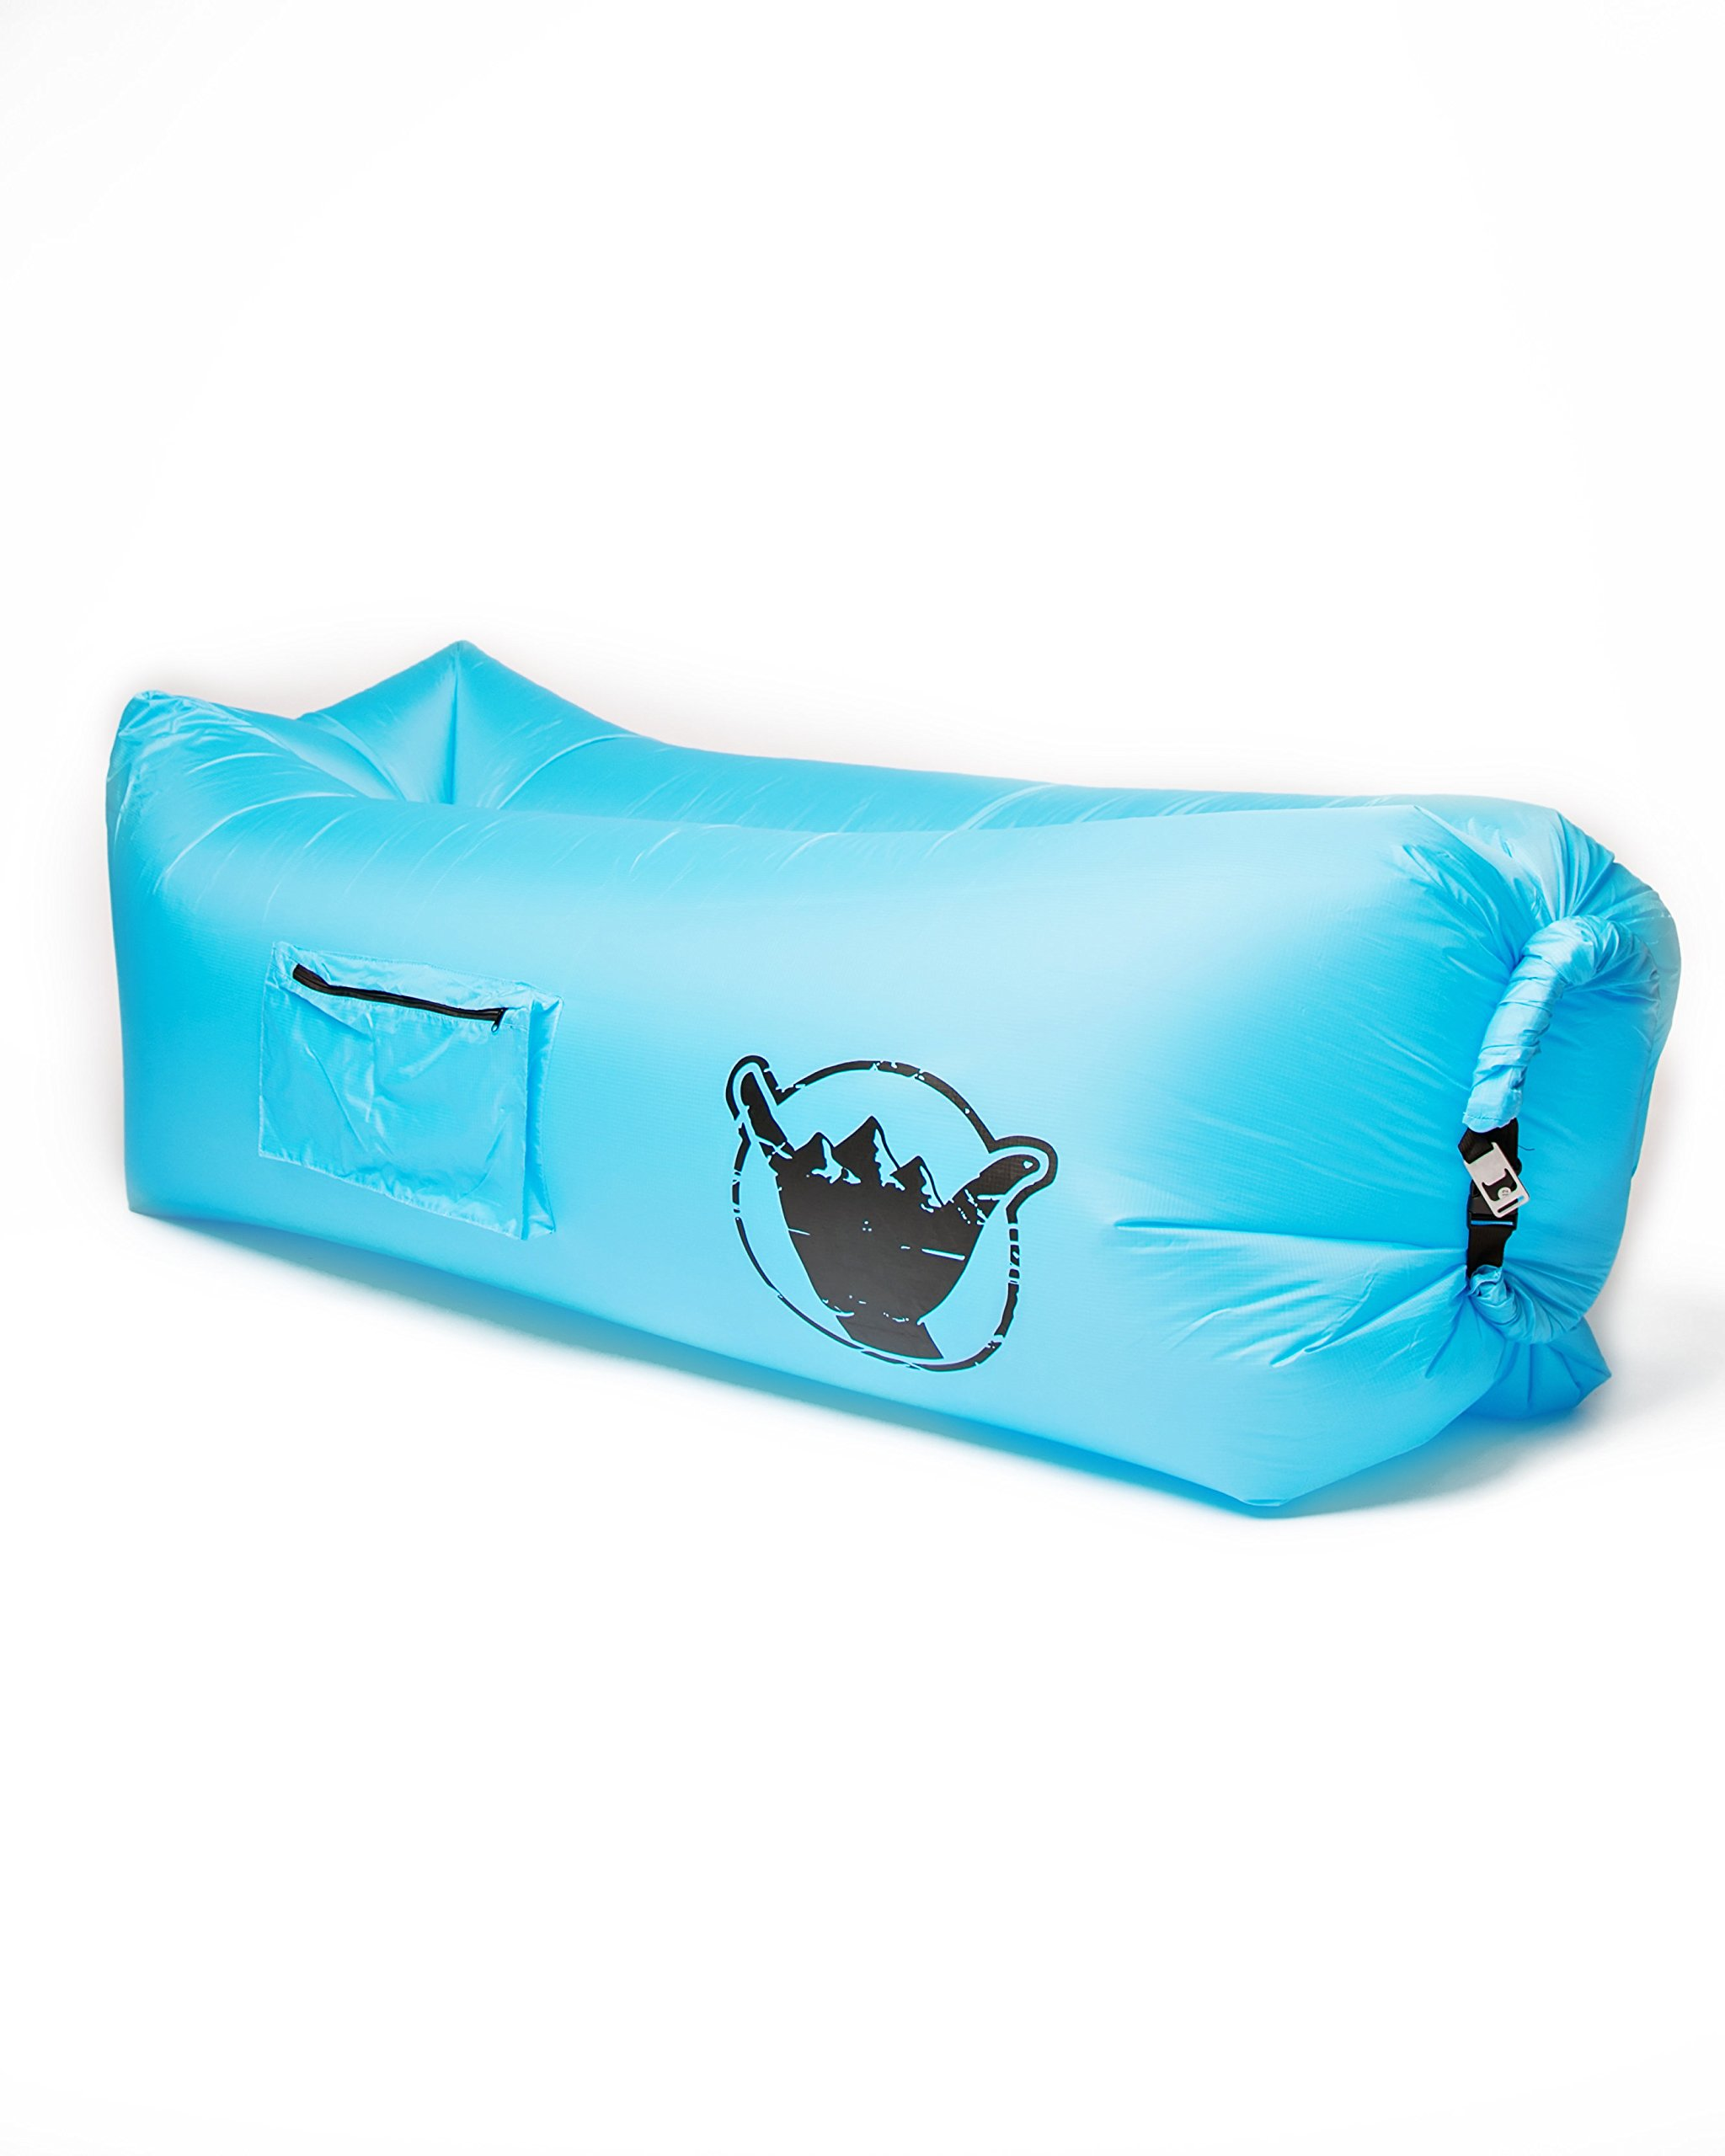 SweetSon Inflatable Lounger- Carry Bag, Securing Stake, Bottle Opener, Cup Holder, Large Pocket with Zipper - Lightweight, Durable, Portable - Beach, Pool and Camping - Outdoor and Indoor Use (Blue) by SweetSon